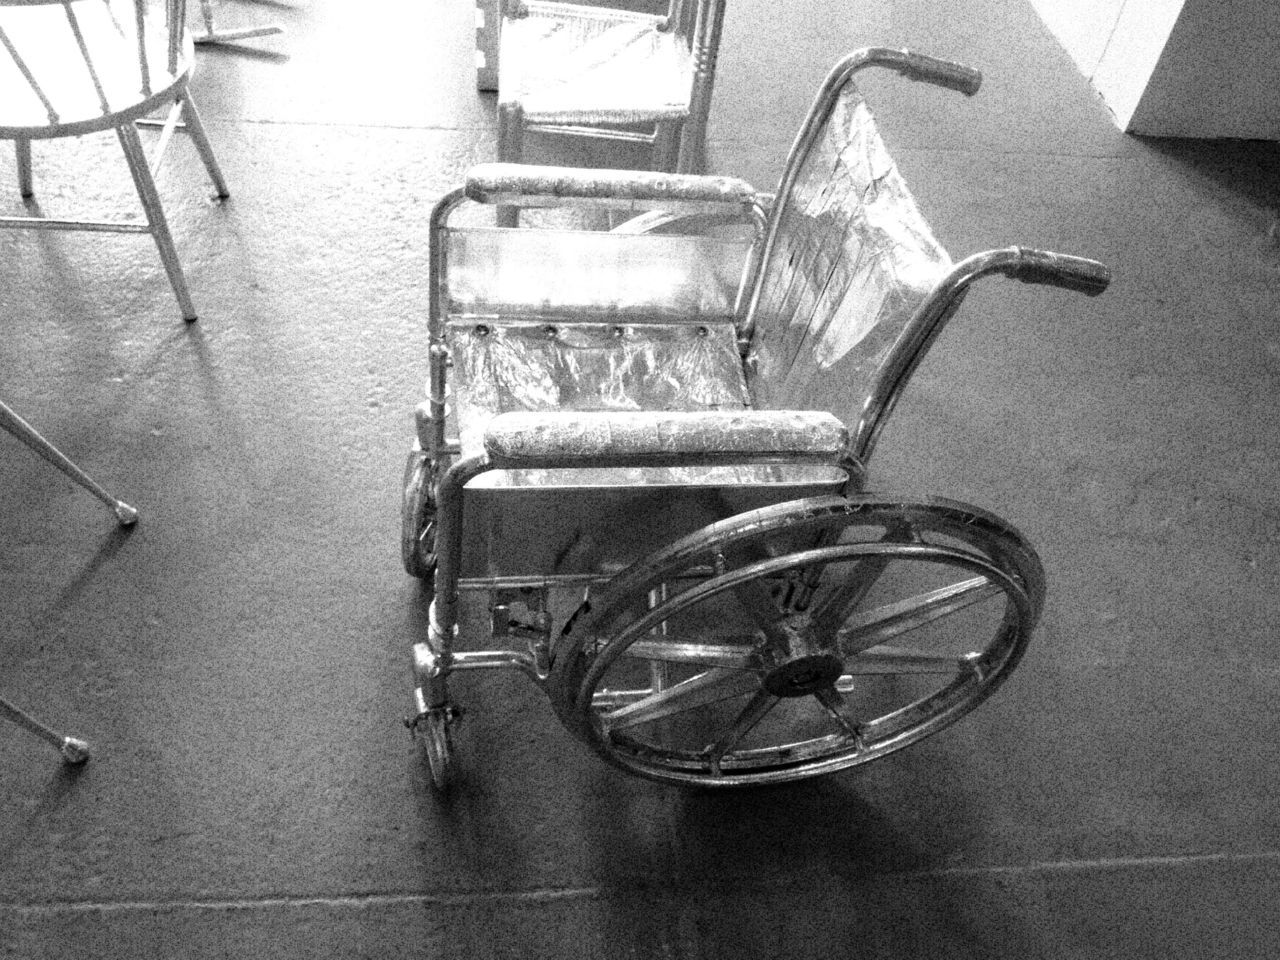 Rob Pruitt's silver wheelchair made its debut at The Independent Art Fair this week.